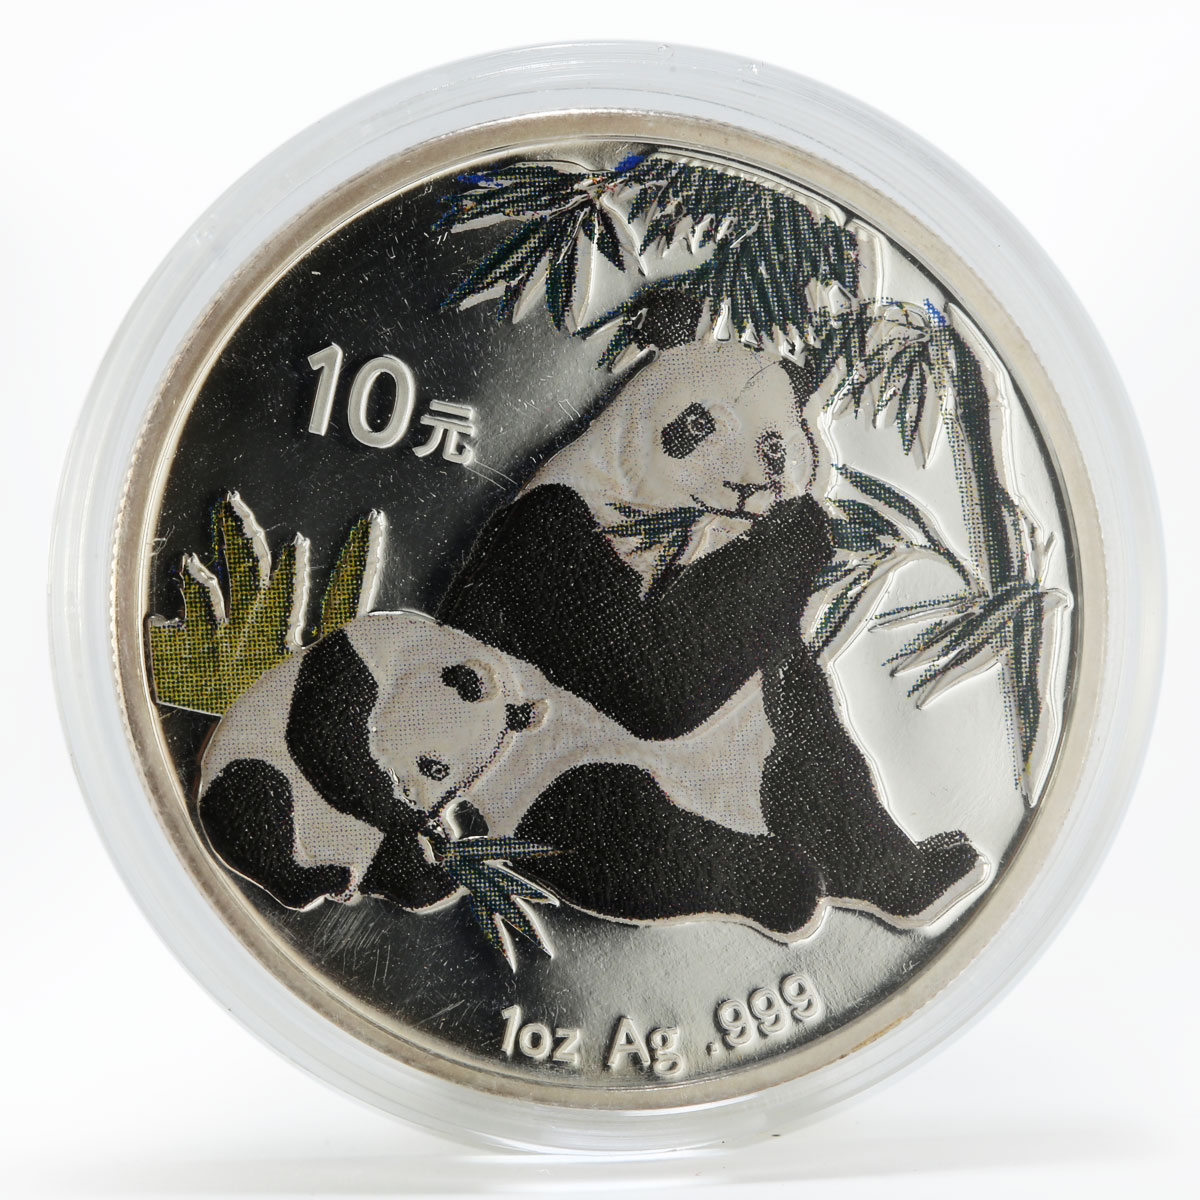 China 10 yuan Panda Series family colored silver coin 2007